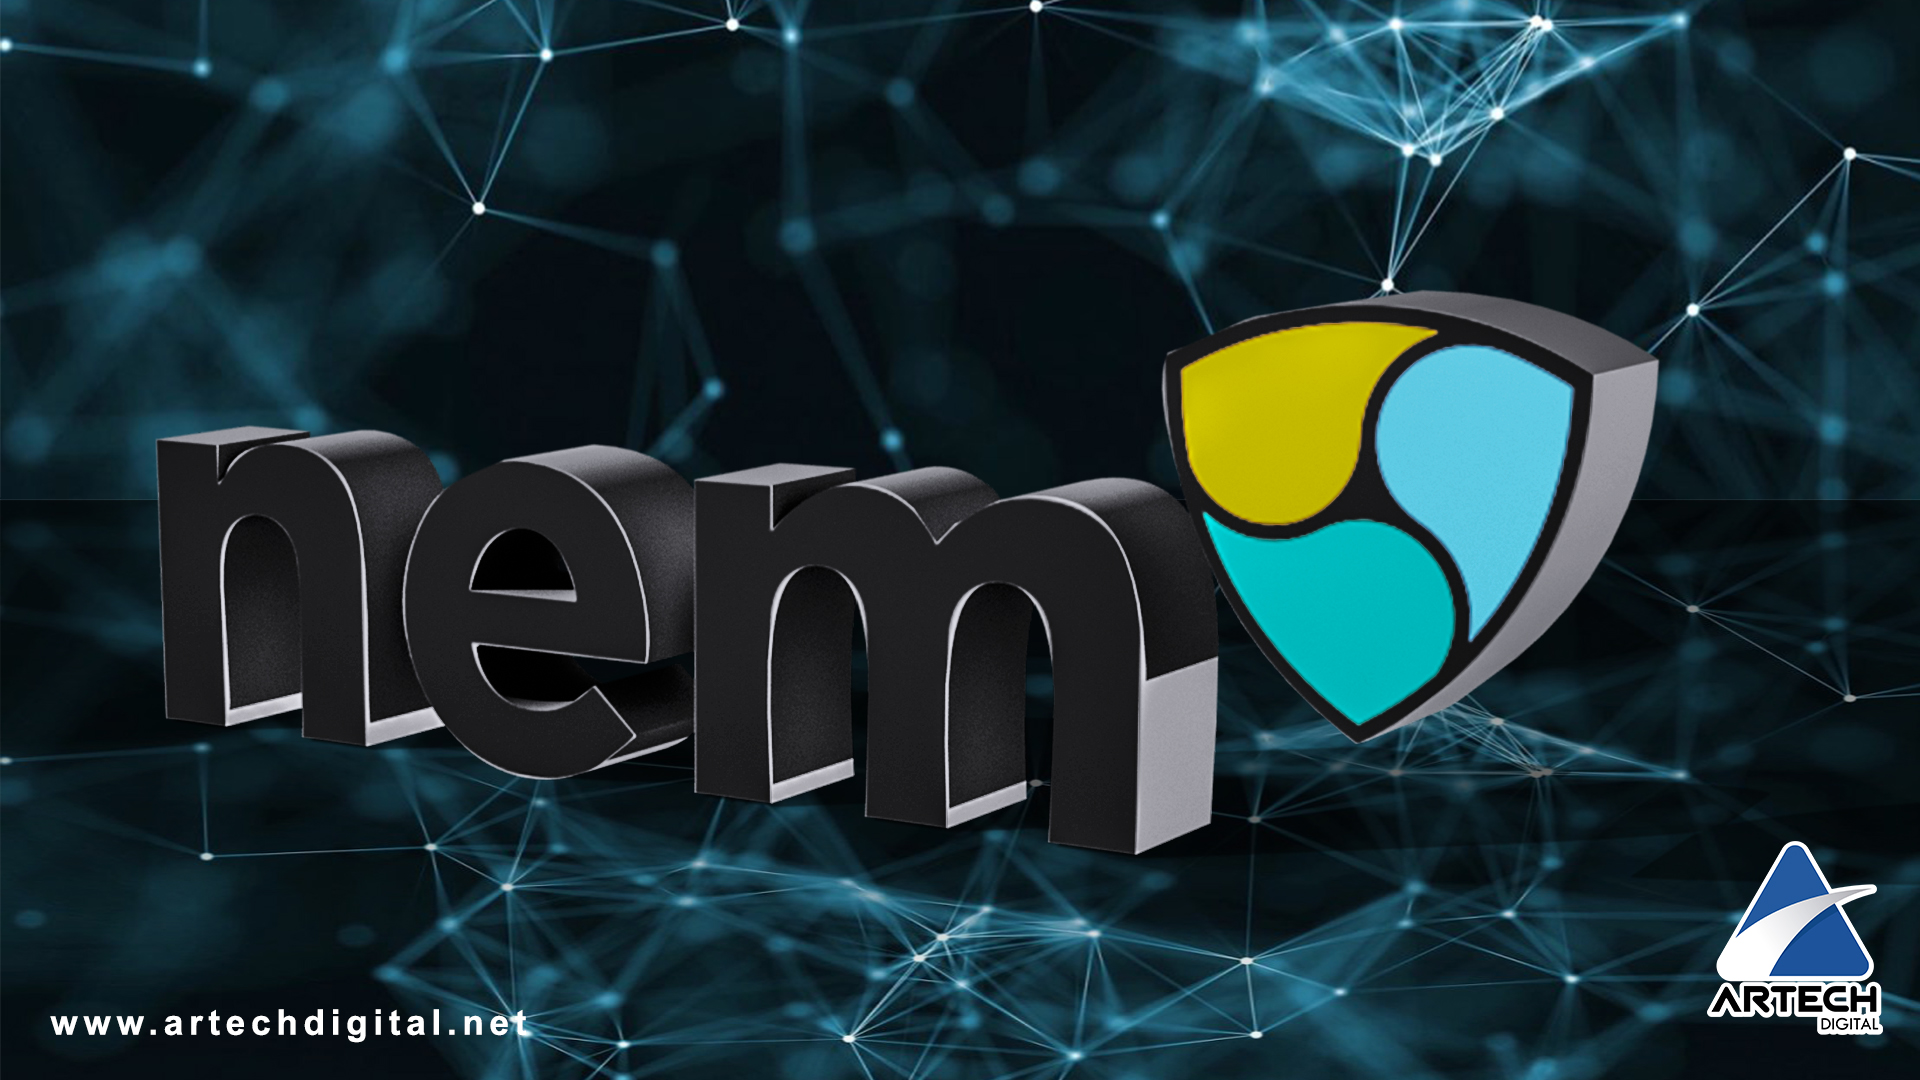 nem - blockchain descentralizada - artech digital